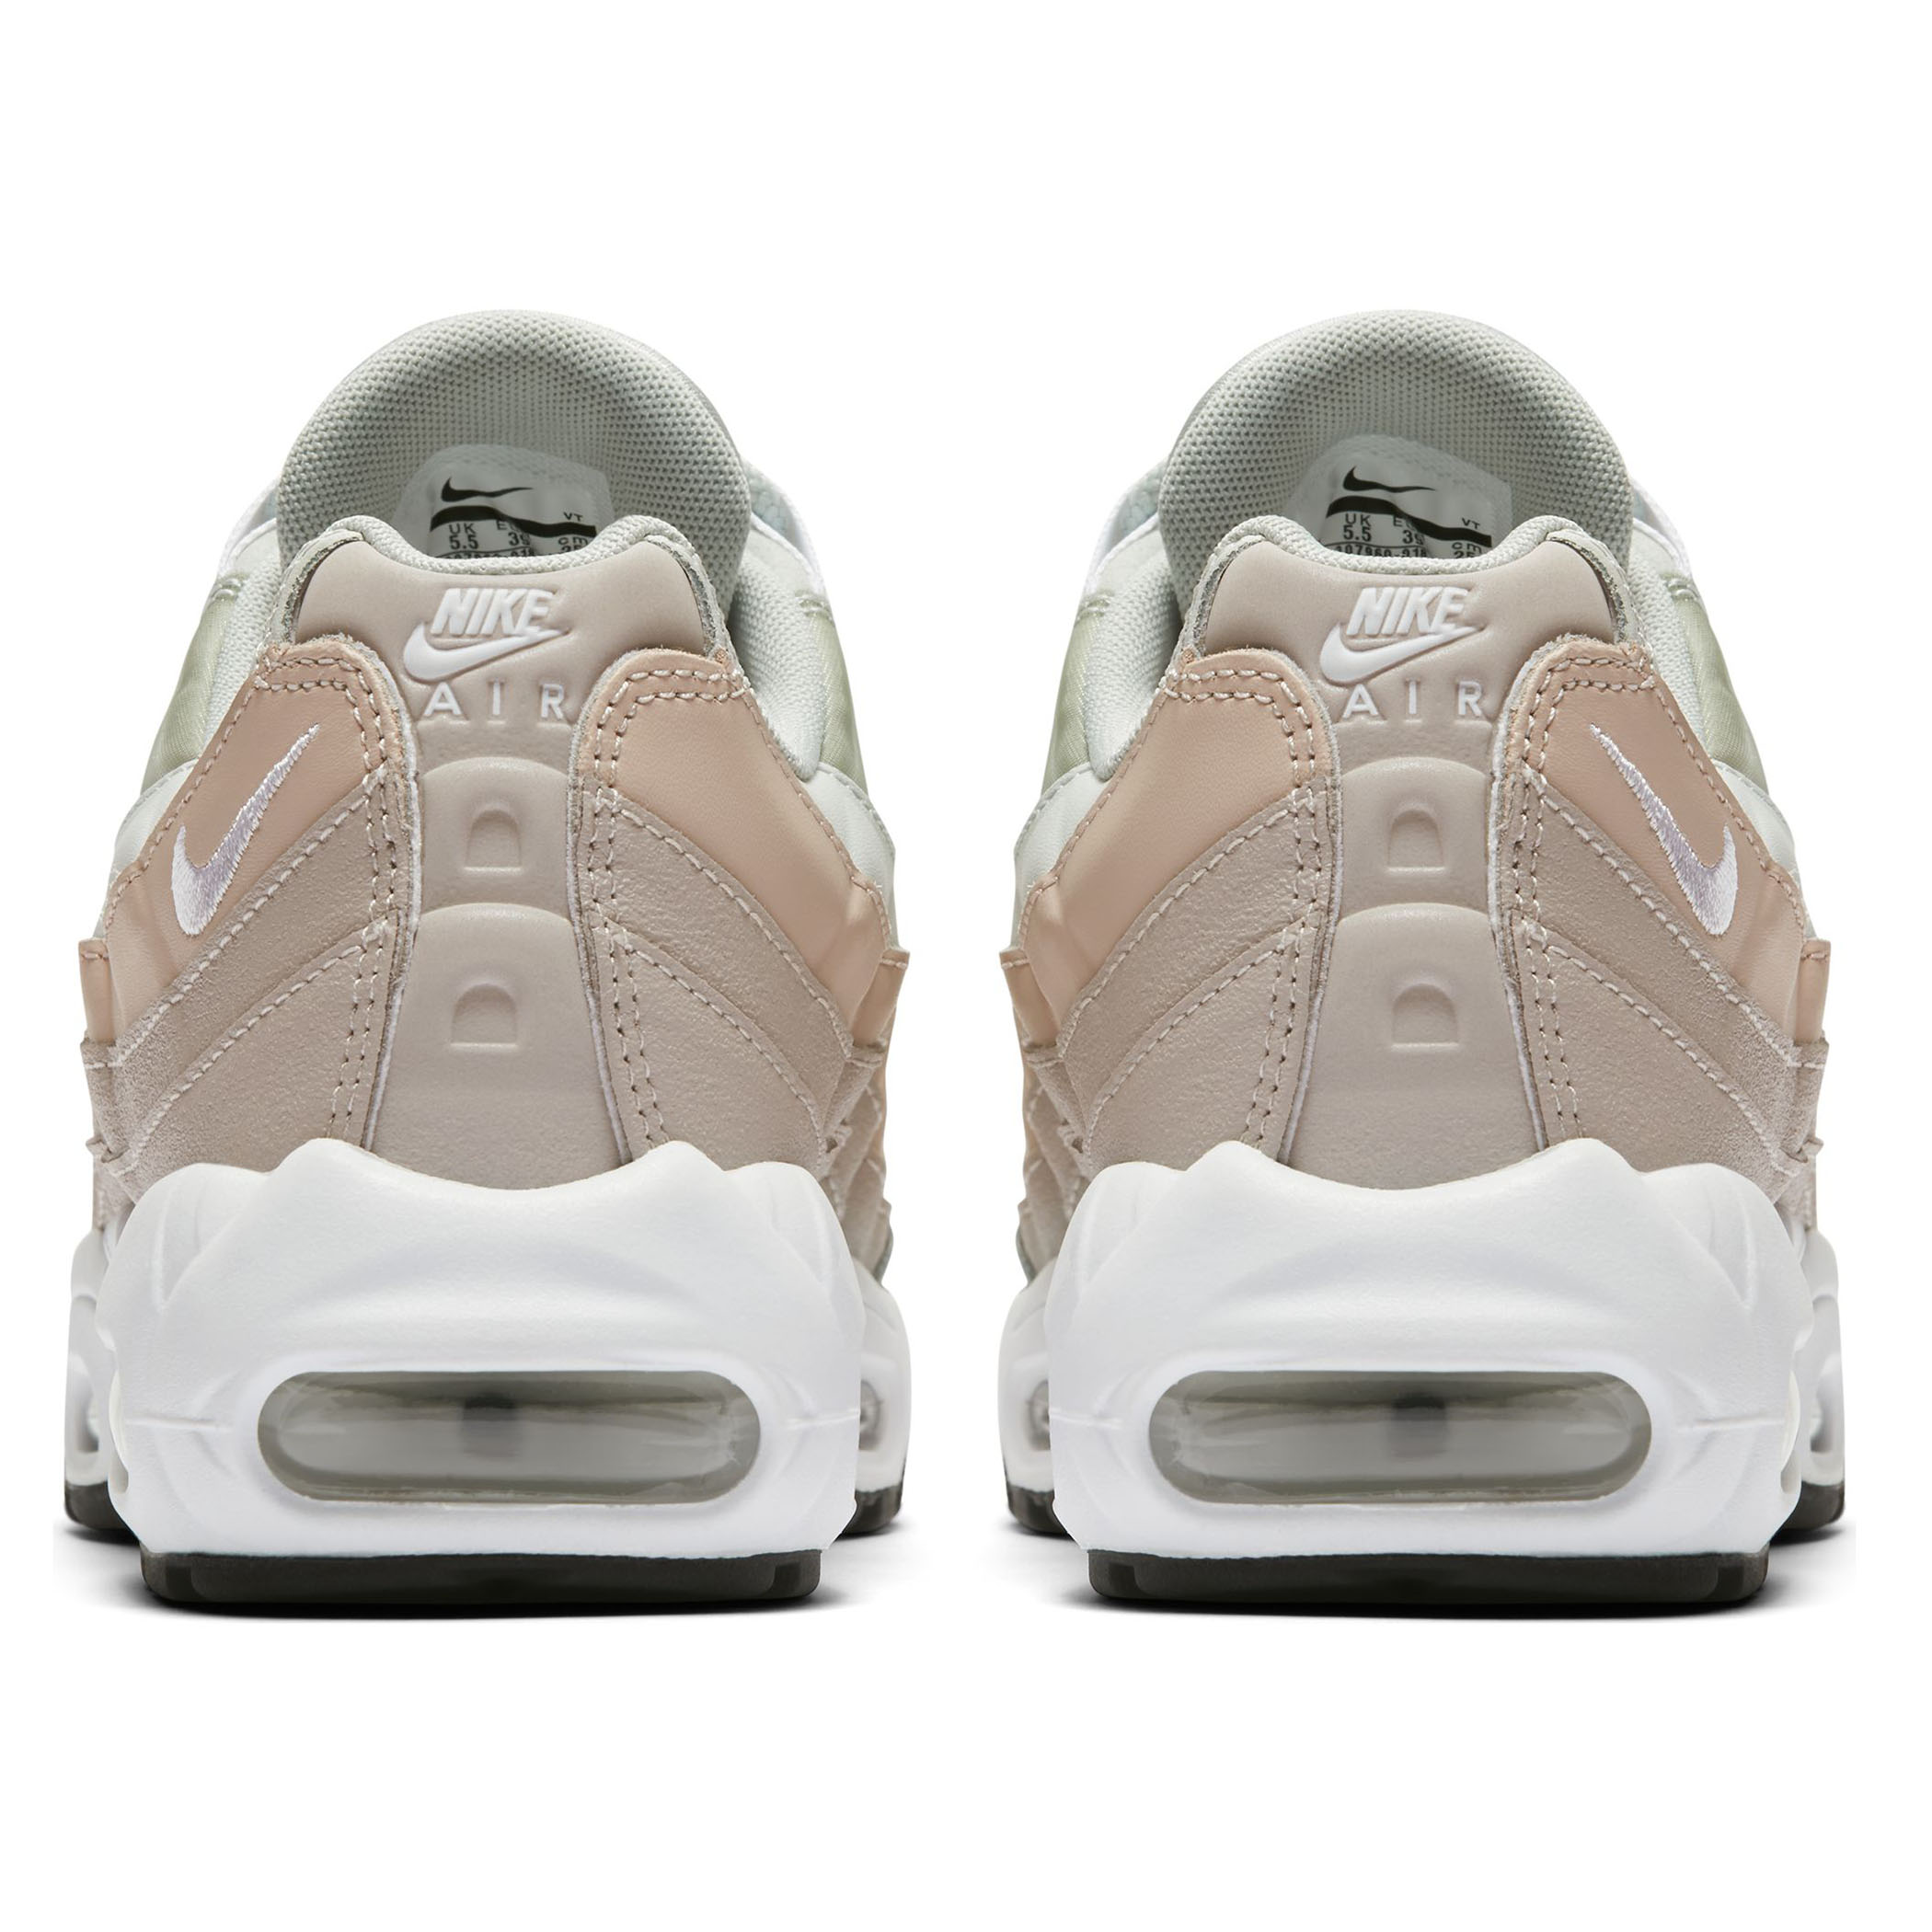 a309b206 Женские кроссовки Nike Air Max 95 Light Silver/White-Moon Particle - фото 4